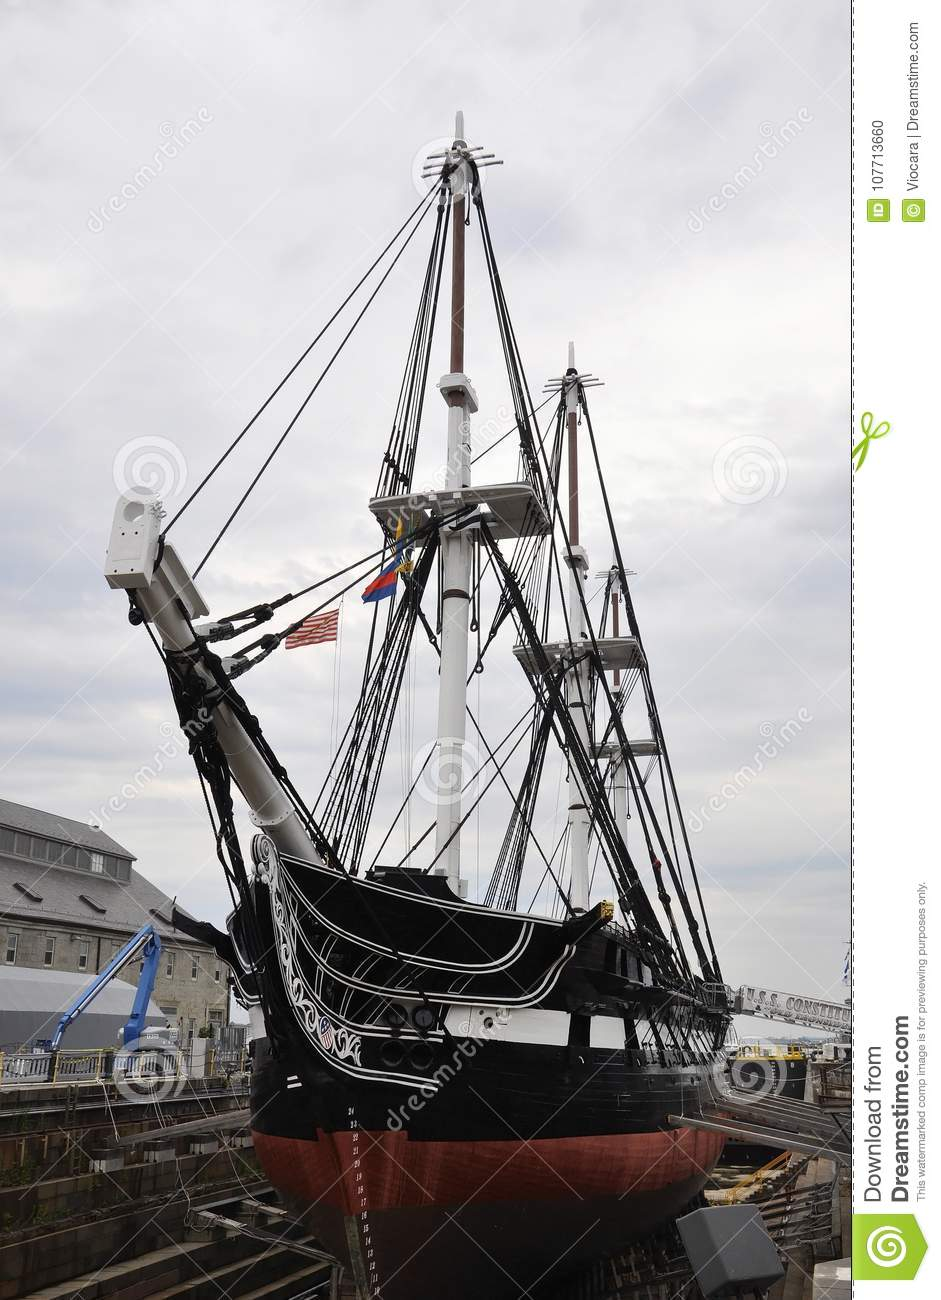 Uss Constitution Stock Images - Download 118 Royalty Free ...